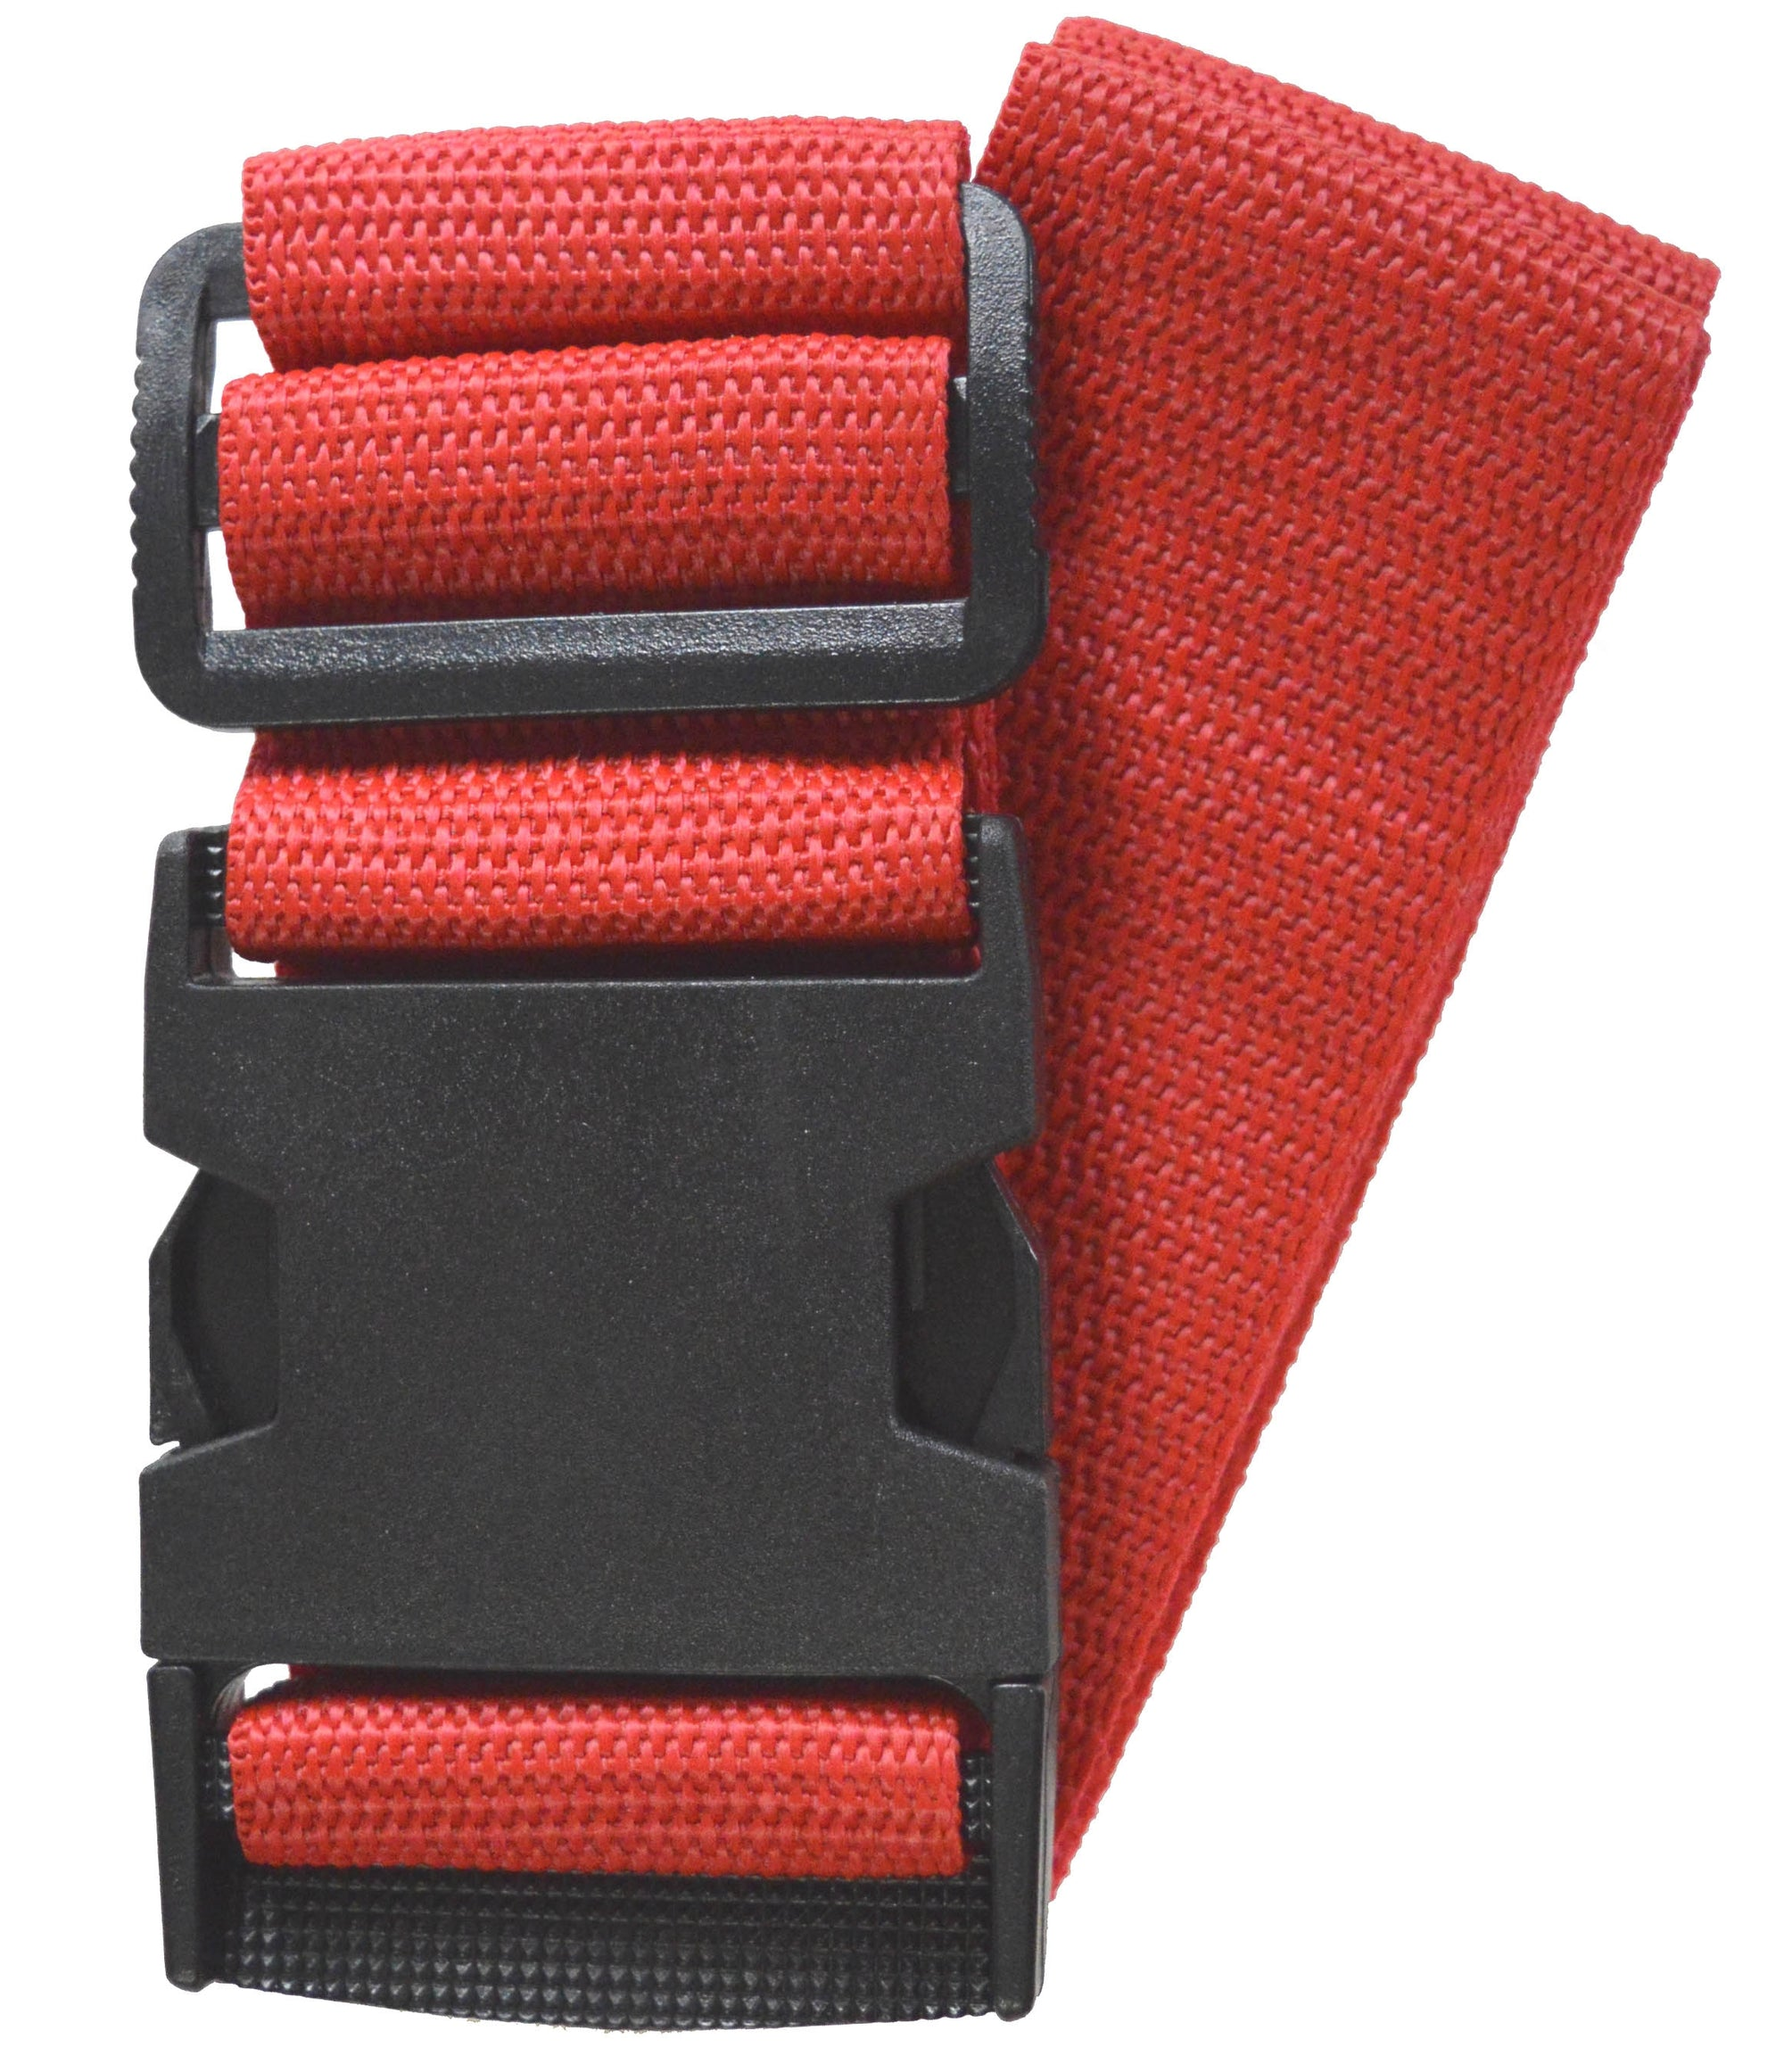 Red Travel Luggage Strap